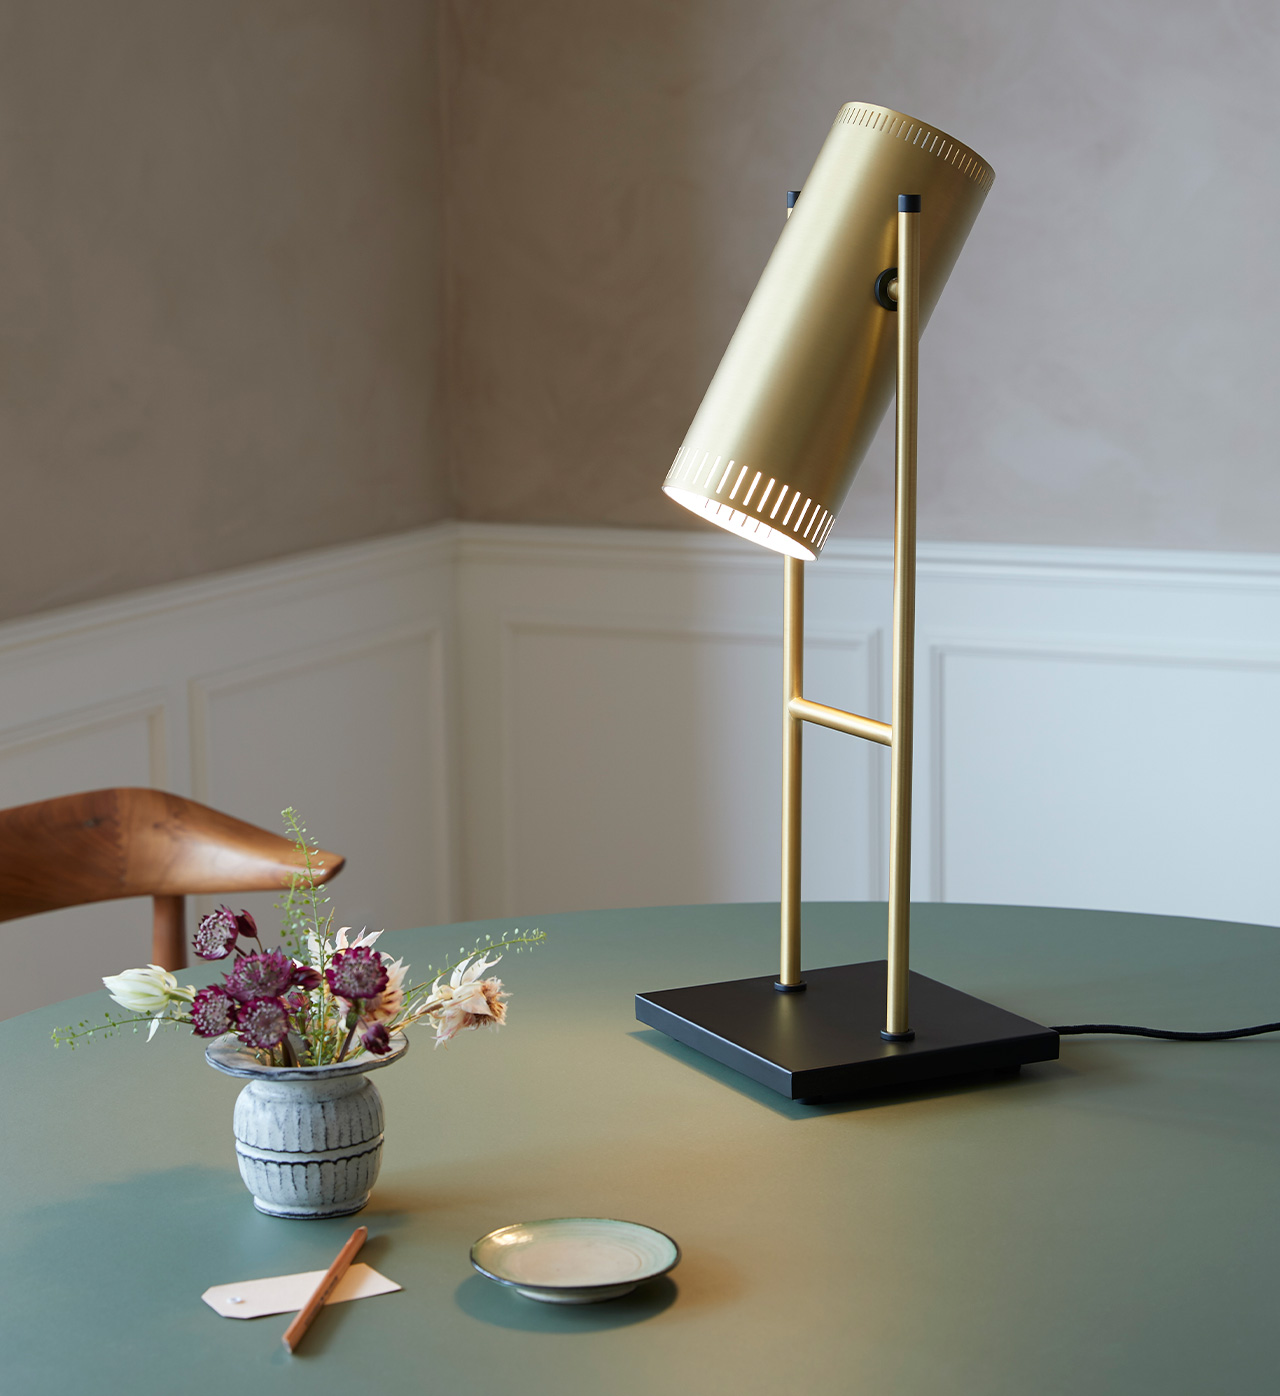 Trombone table lamp